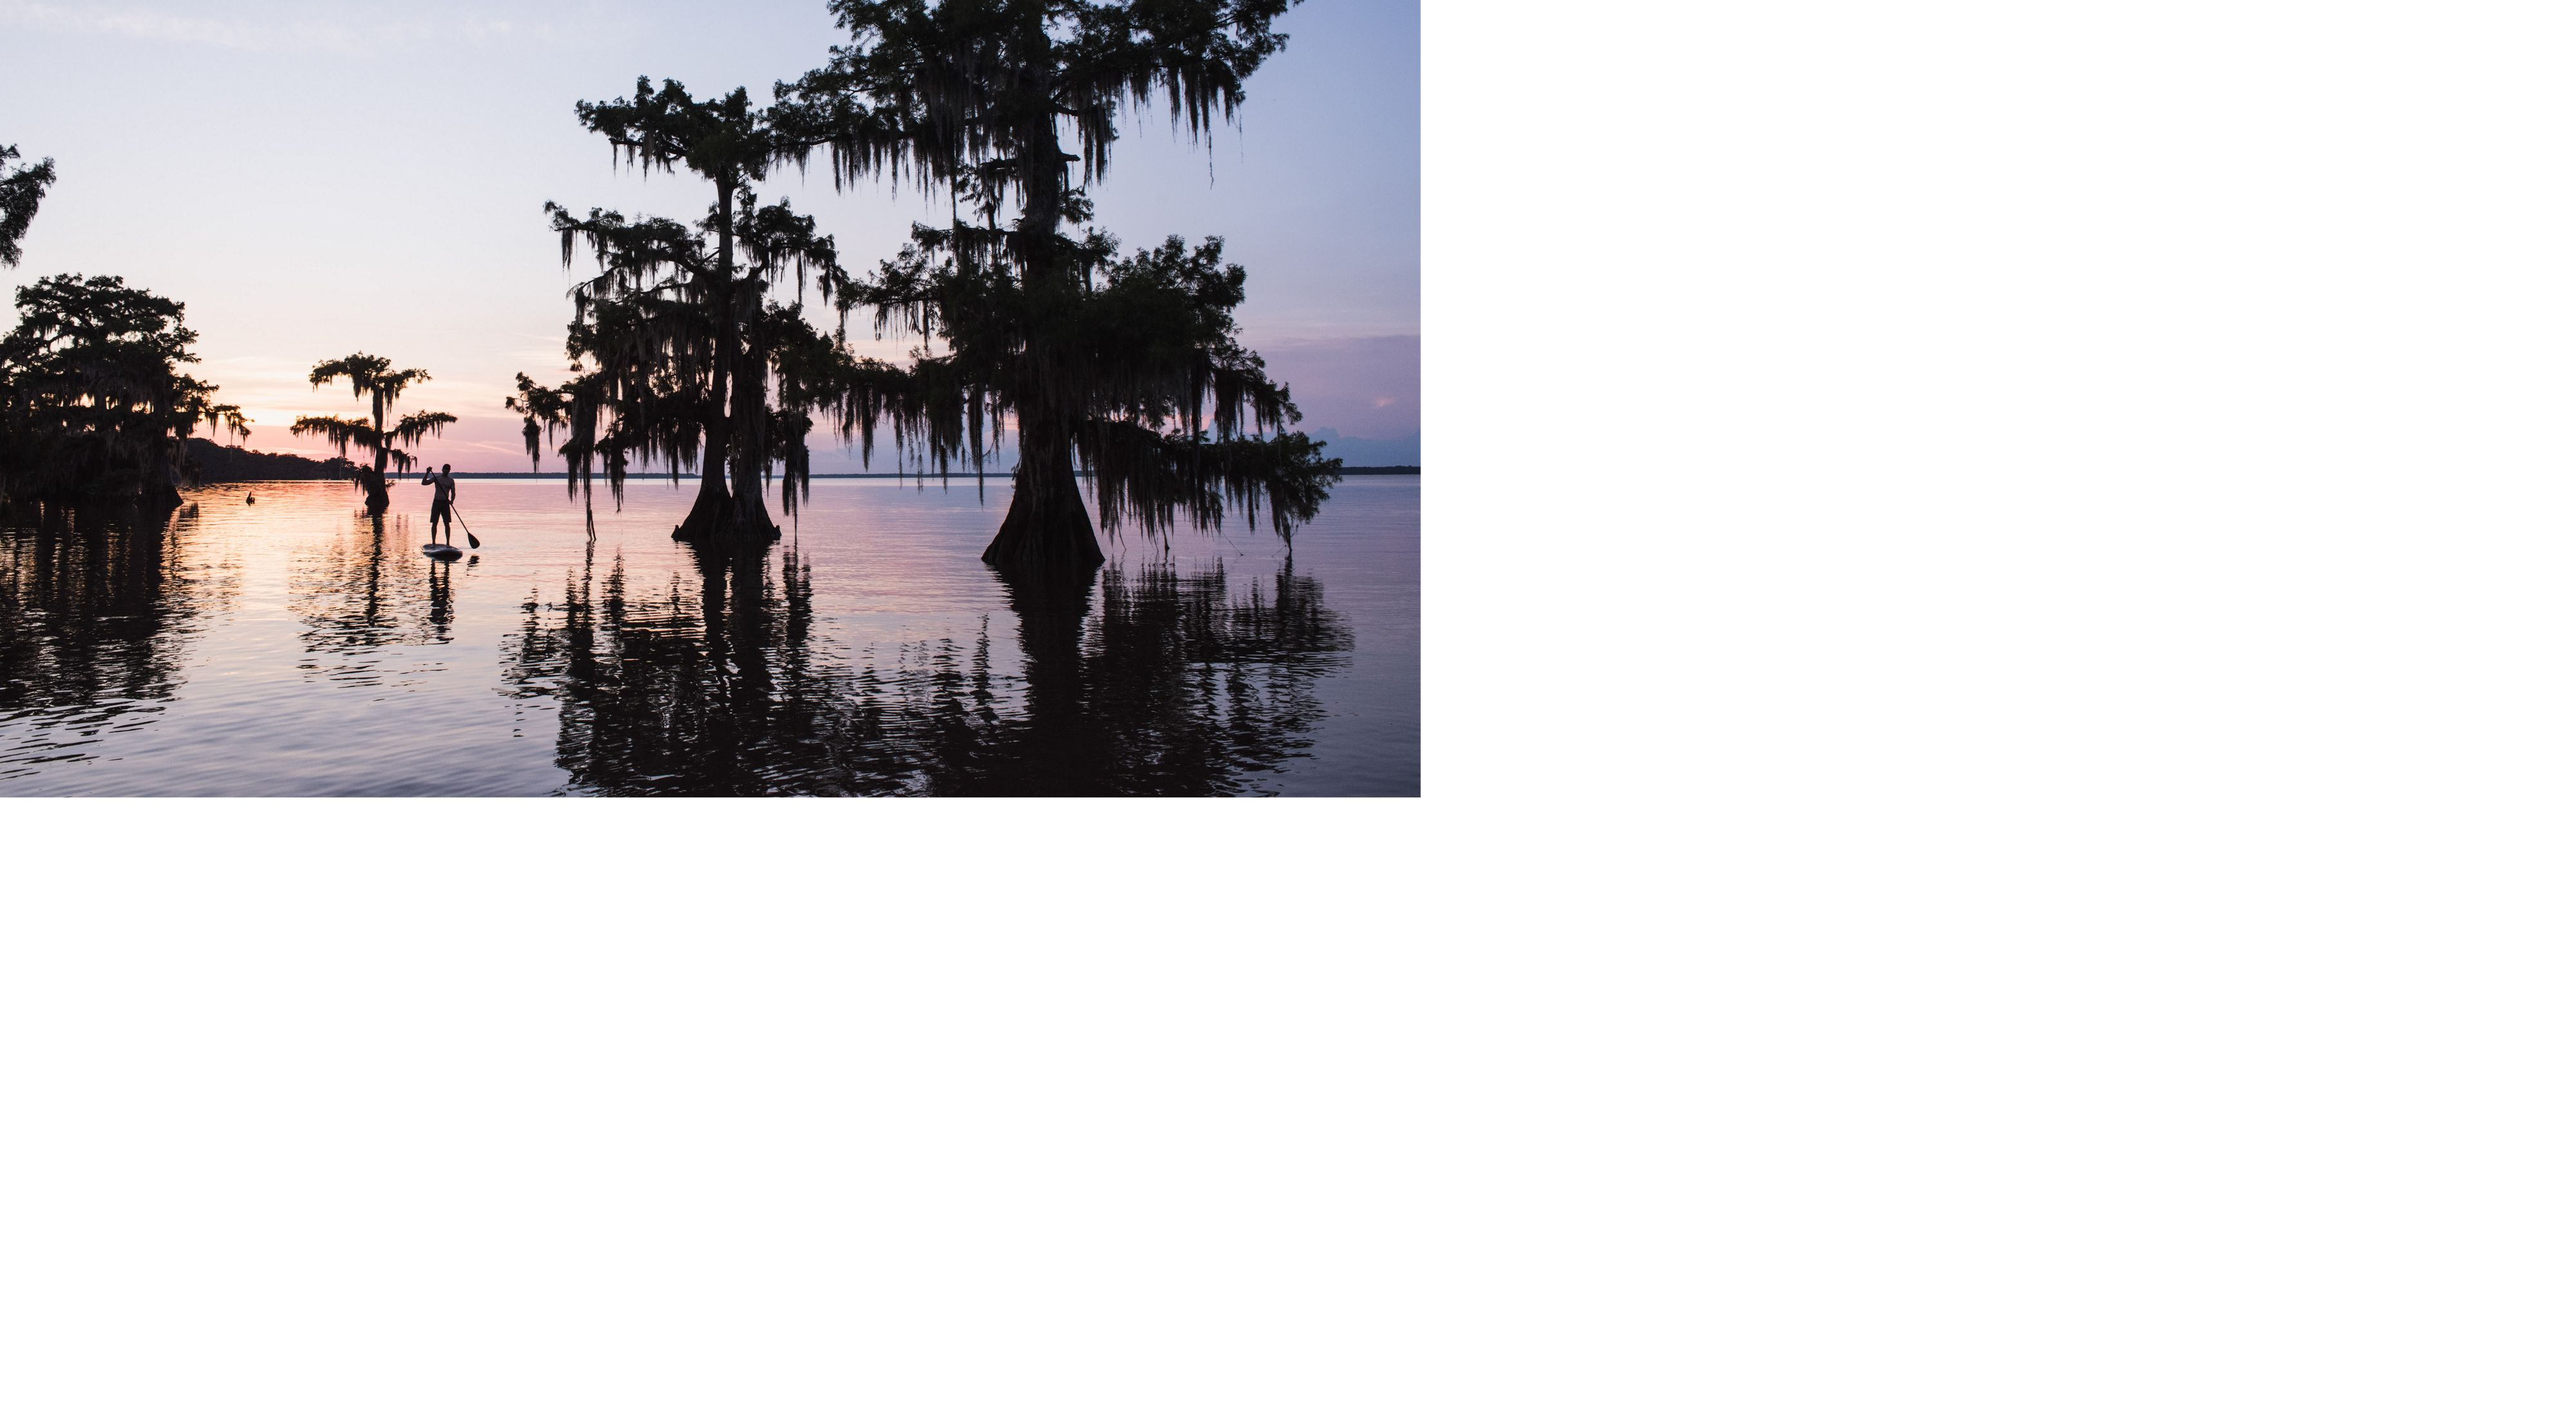 A man enjoys paddleboarding among the cypress trees in Lake Fausse Point, Louisiana.